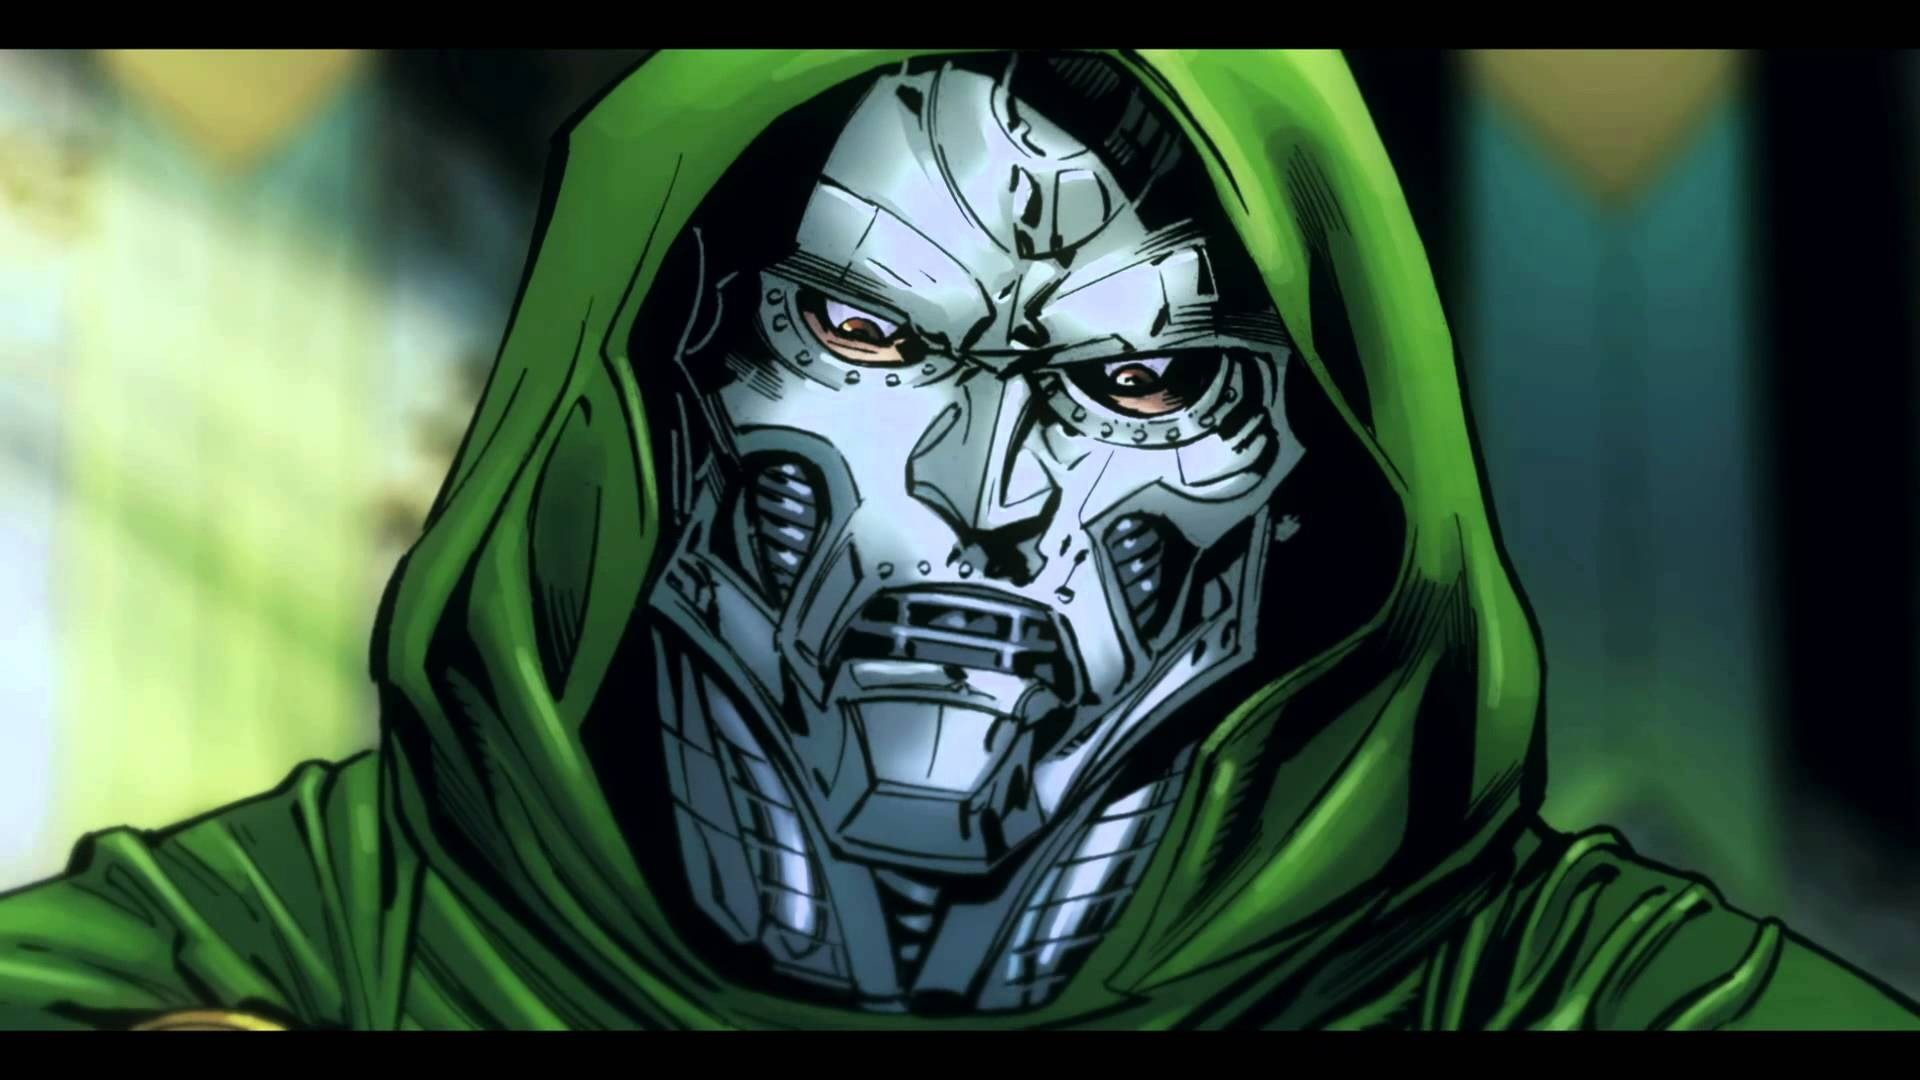 px Quality Cool doctor doom wallpaper by Hilton Brook for : NS.com